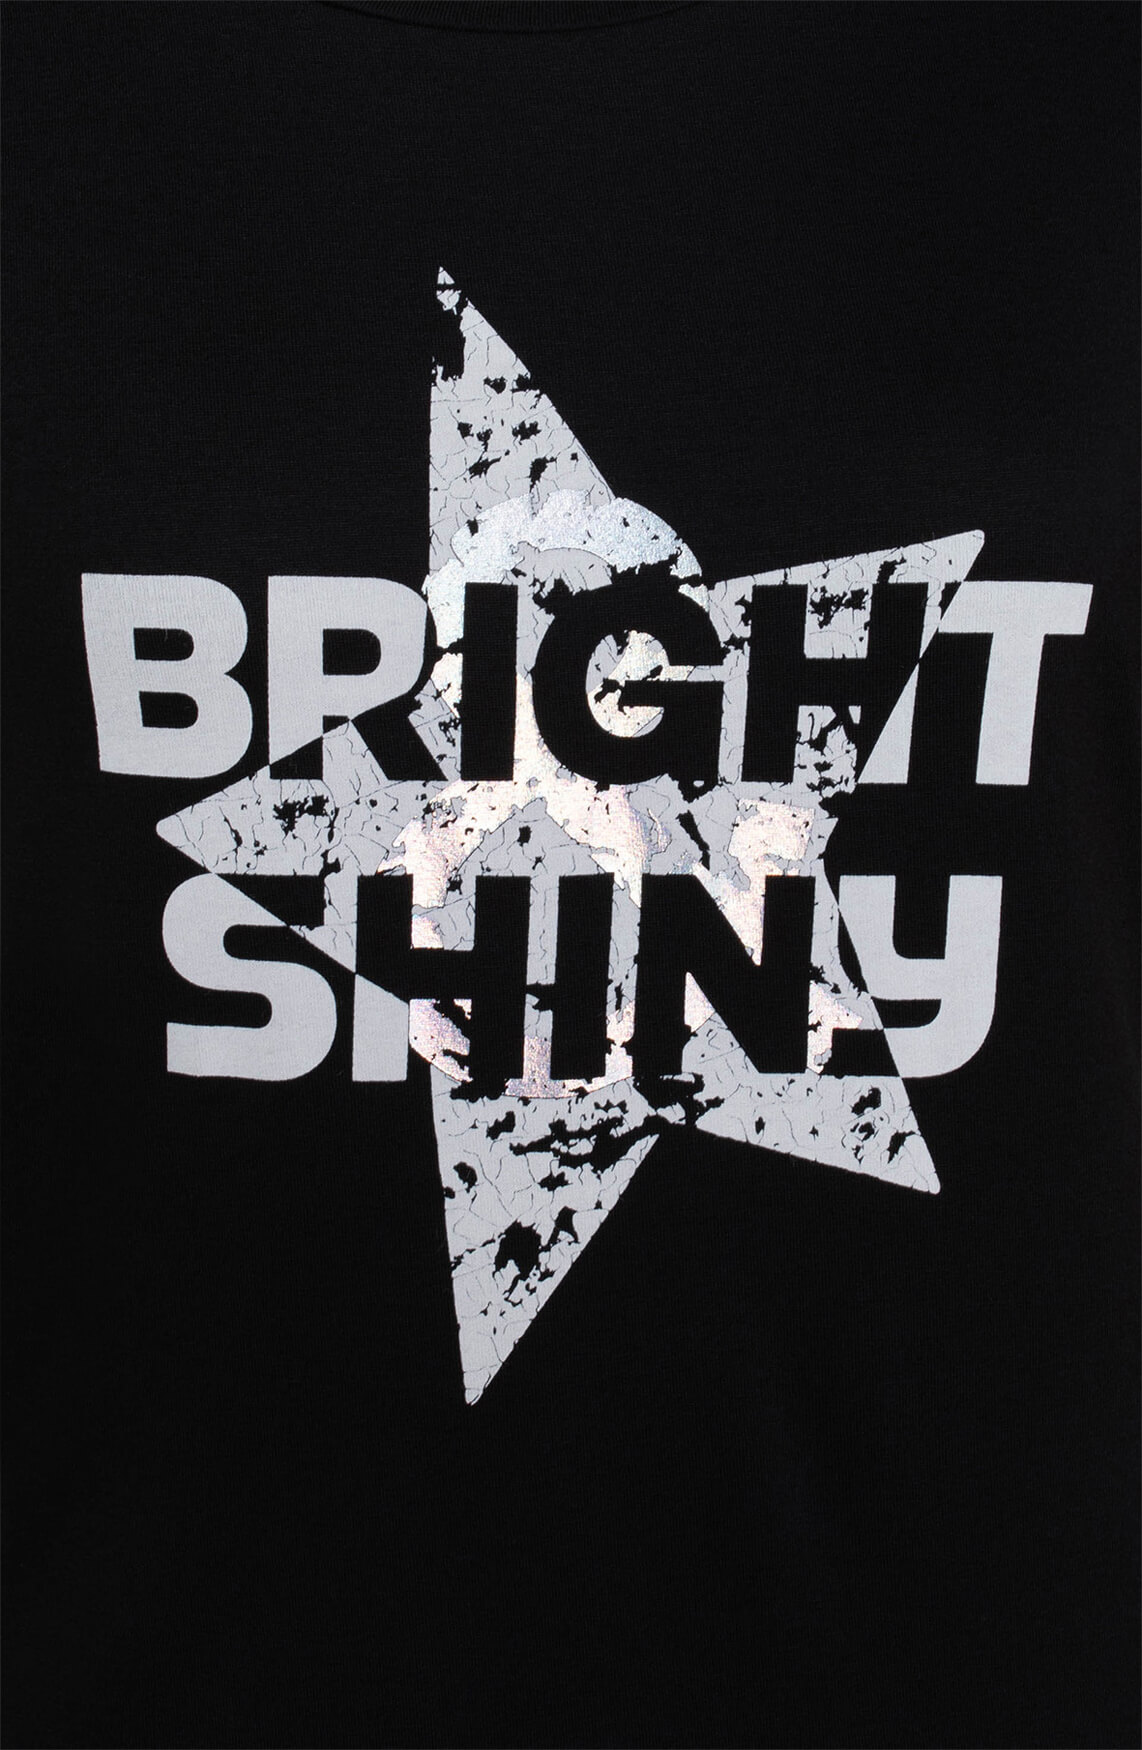 Anna Dames Bright & Shiny shirt zwart